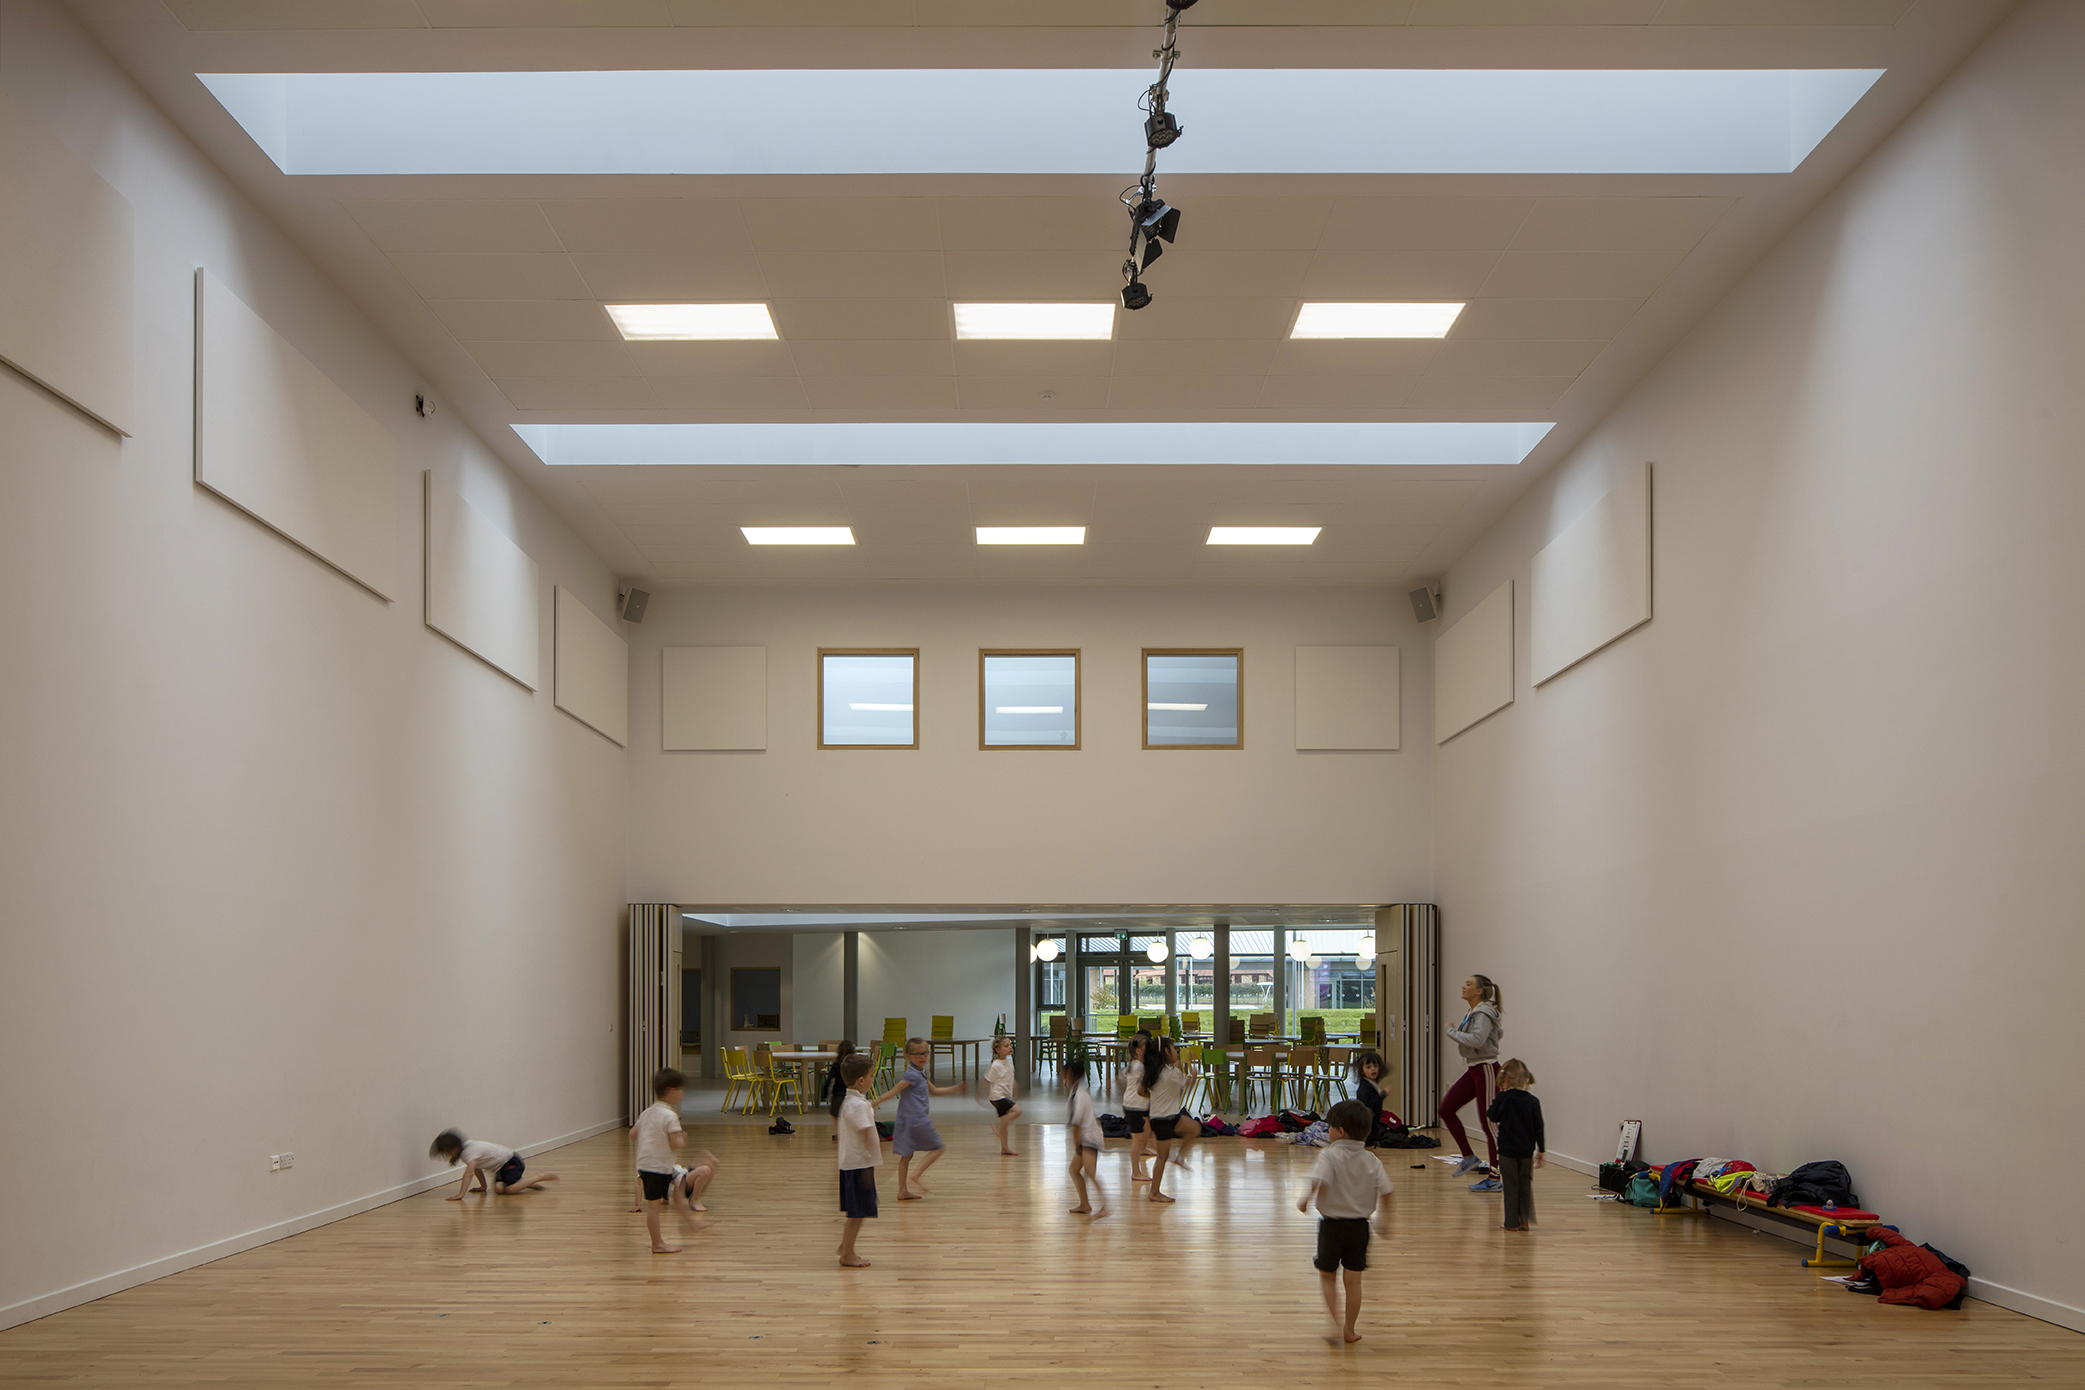 kids exercising interior view - University of Cambridge Primary School by Marks Barfield Architects